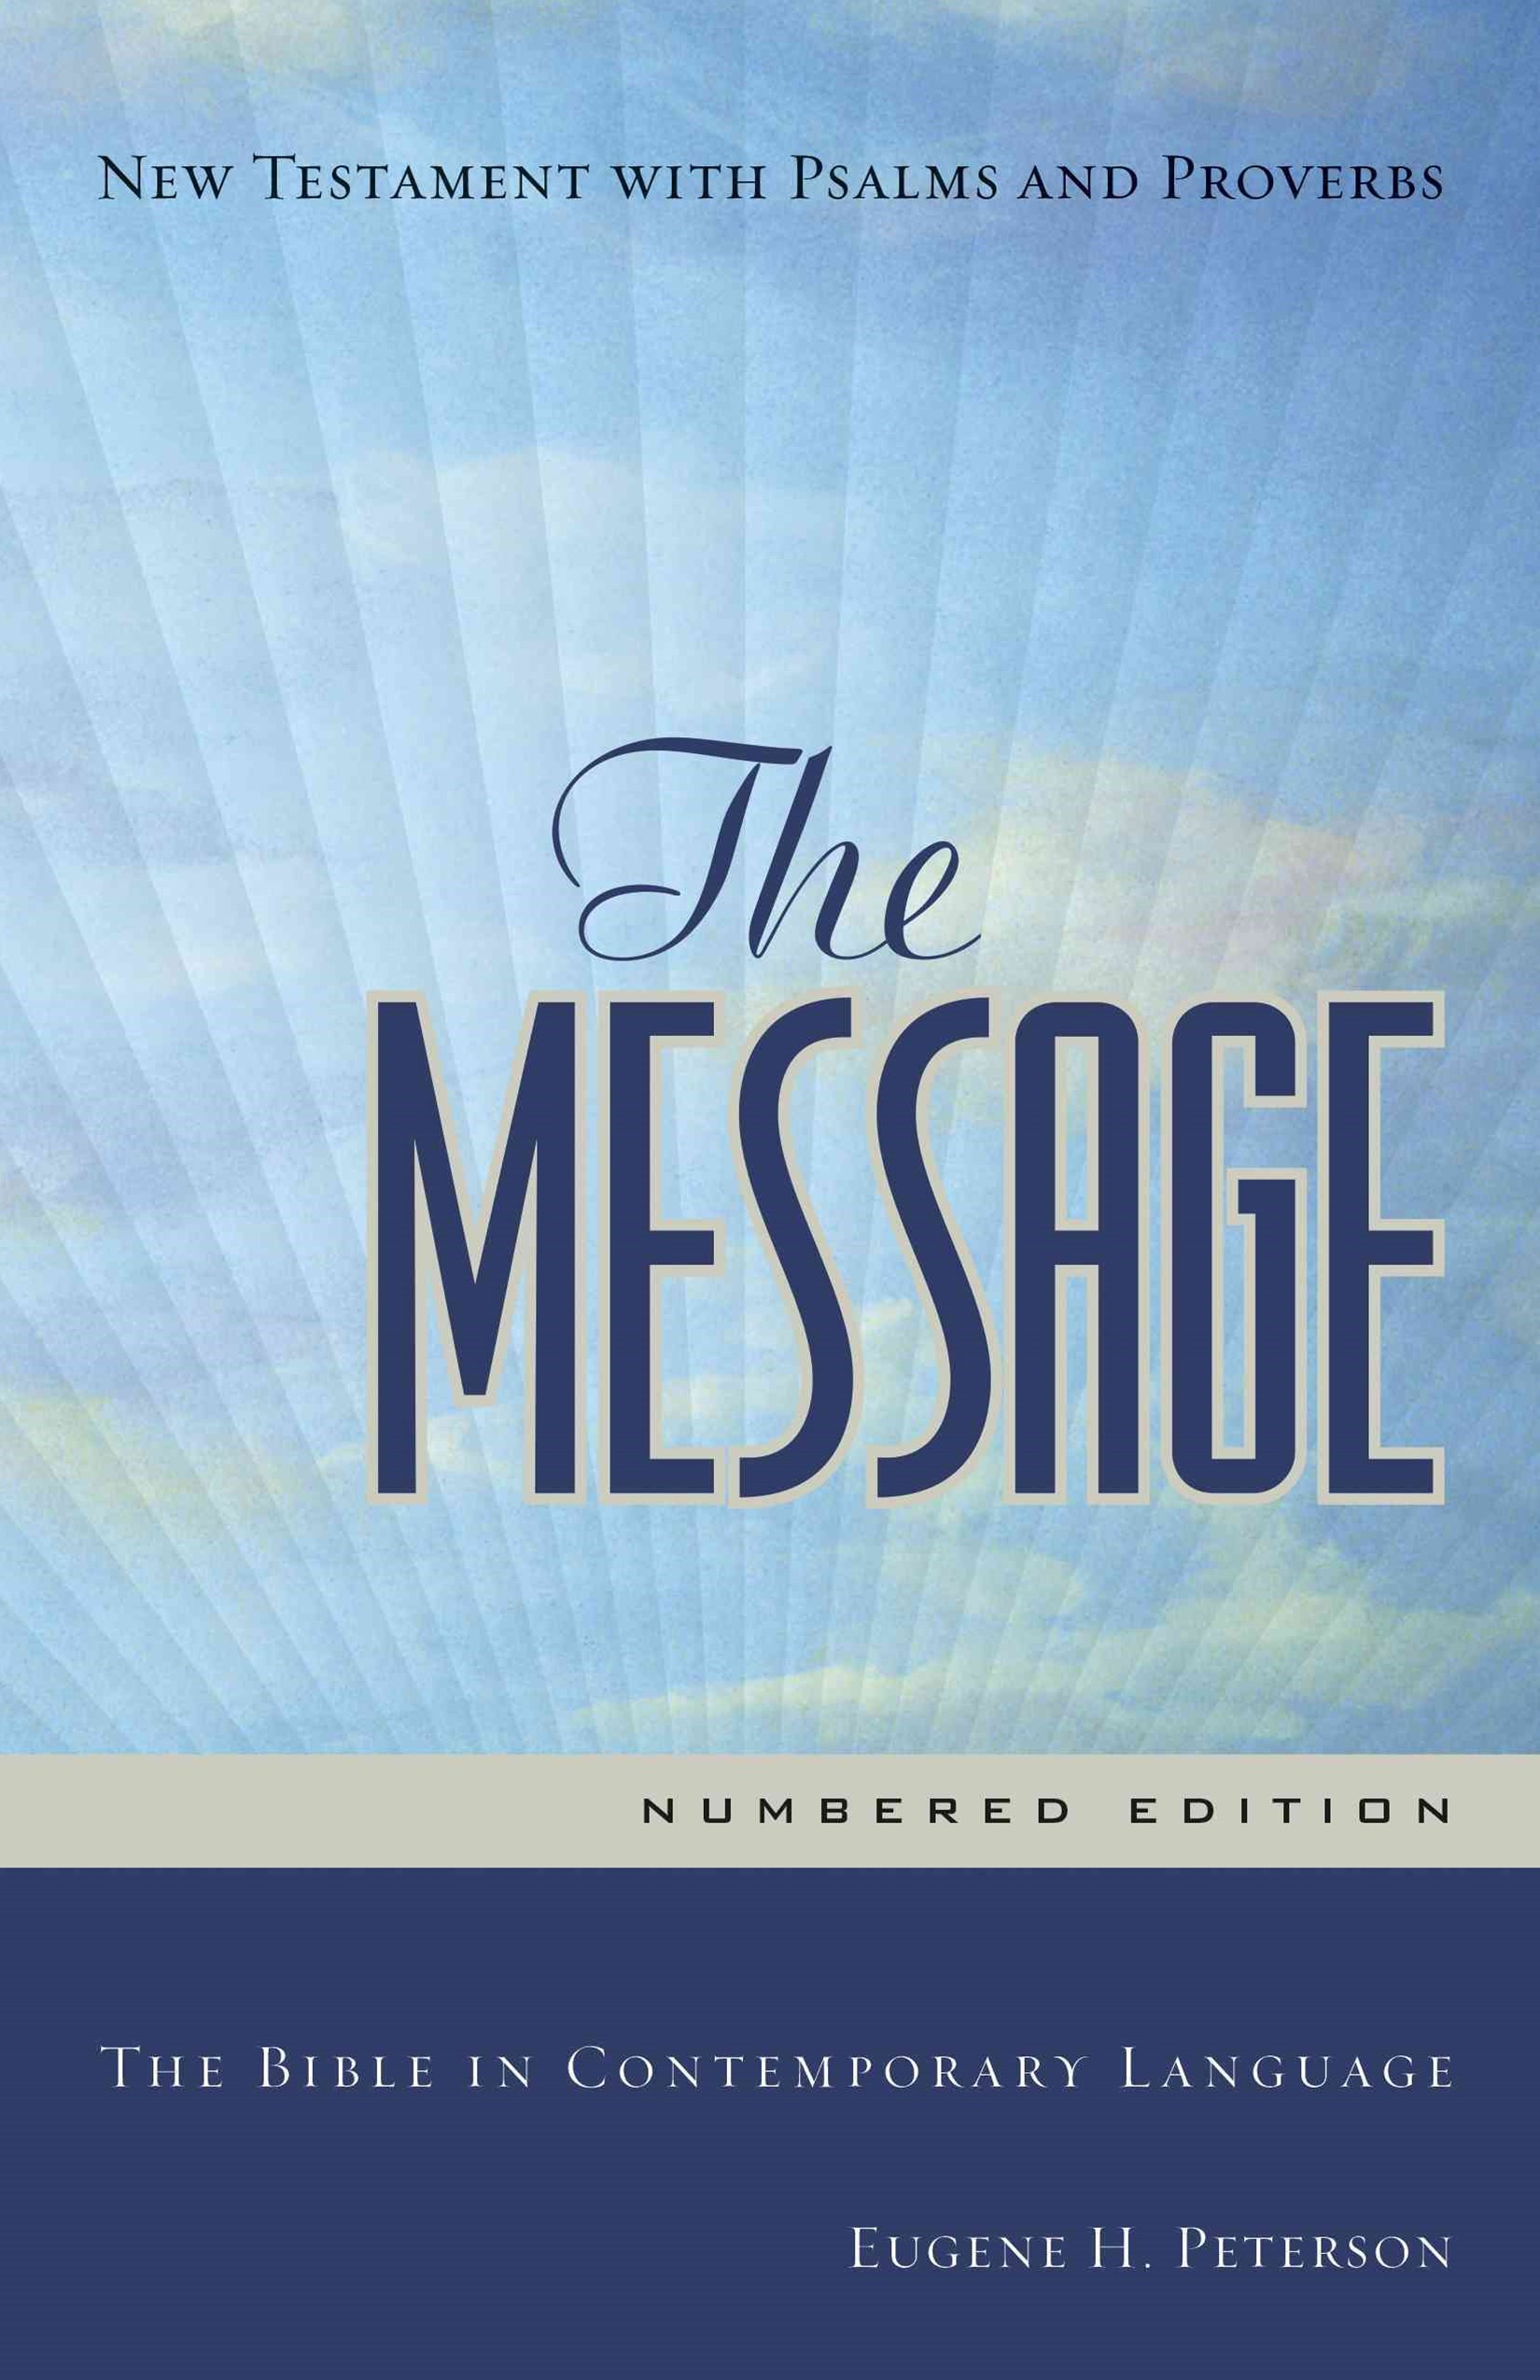 Message Personal New Testament